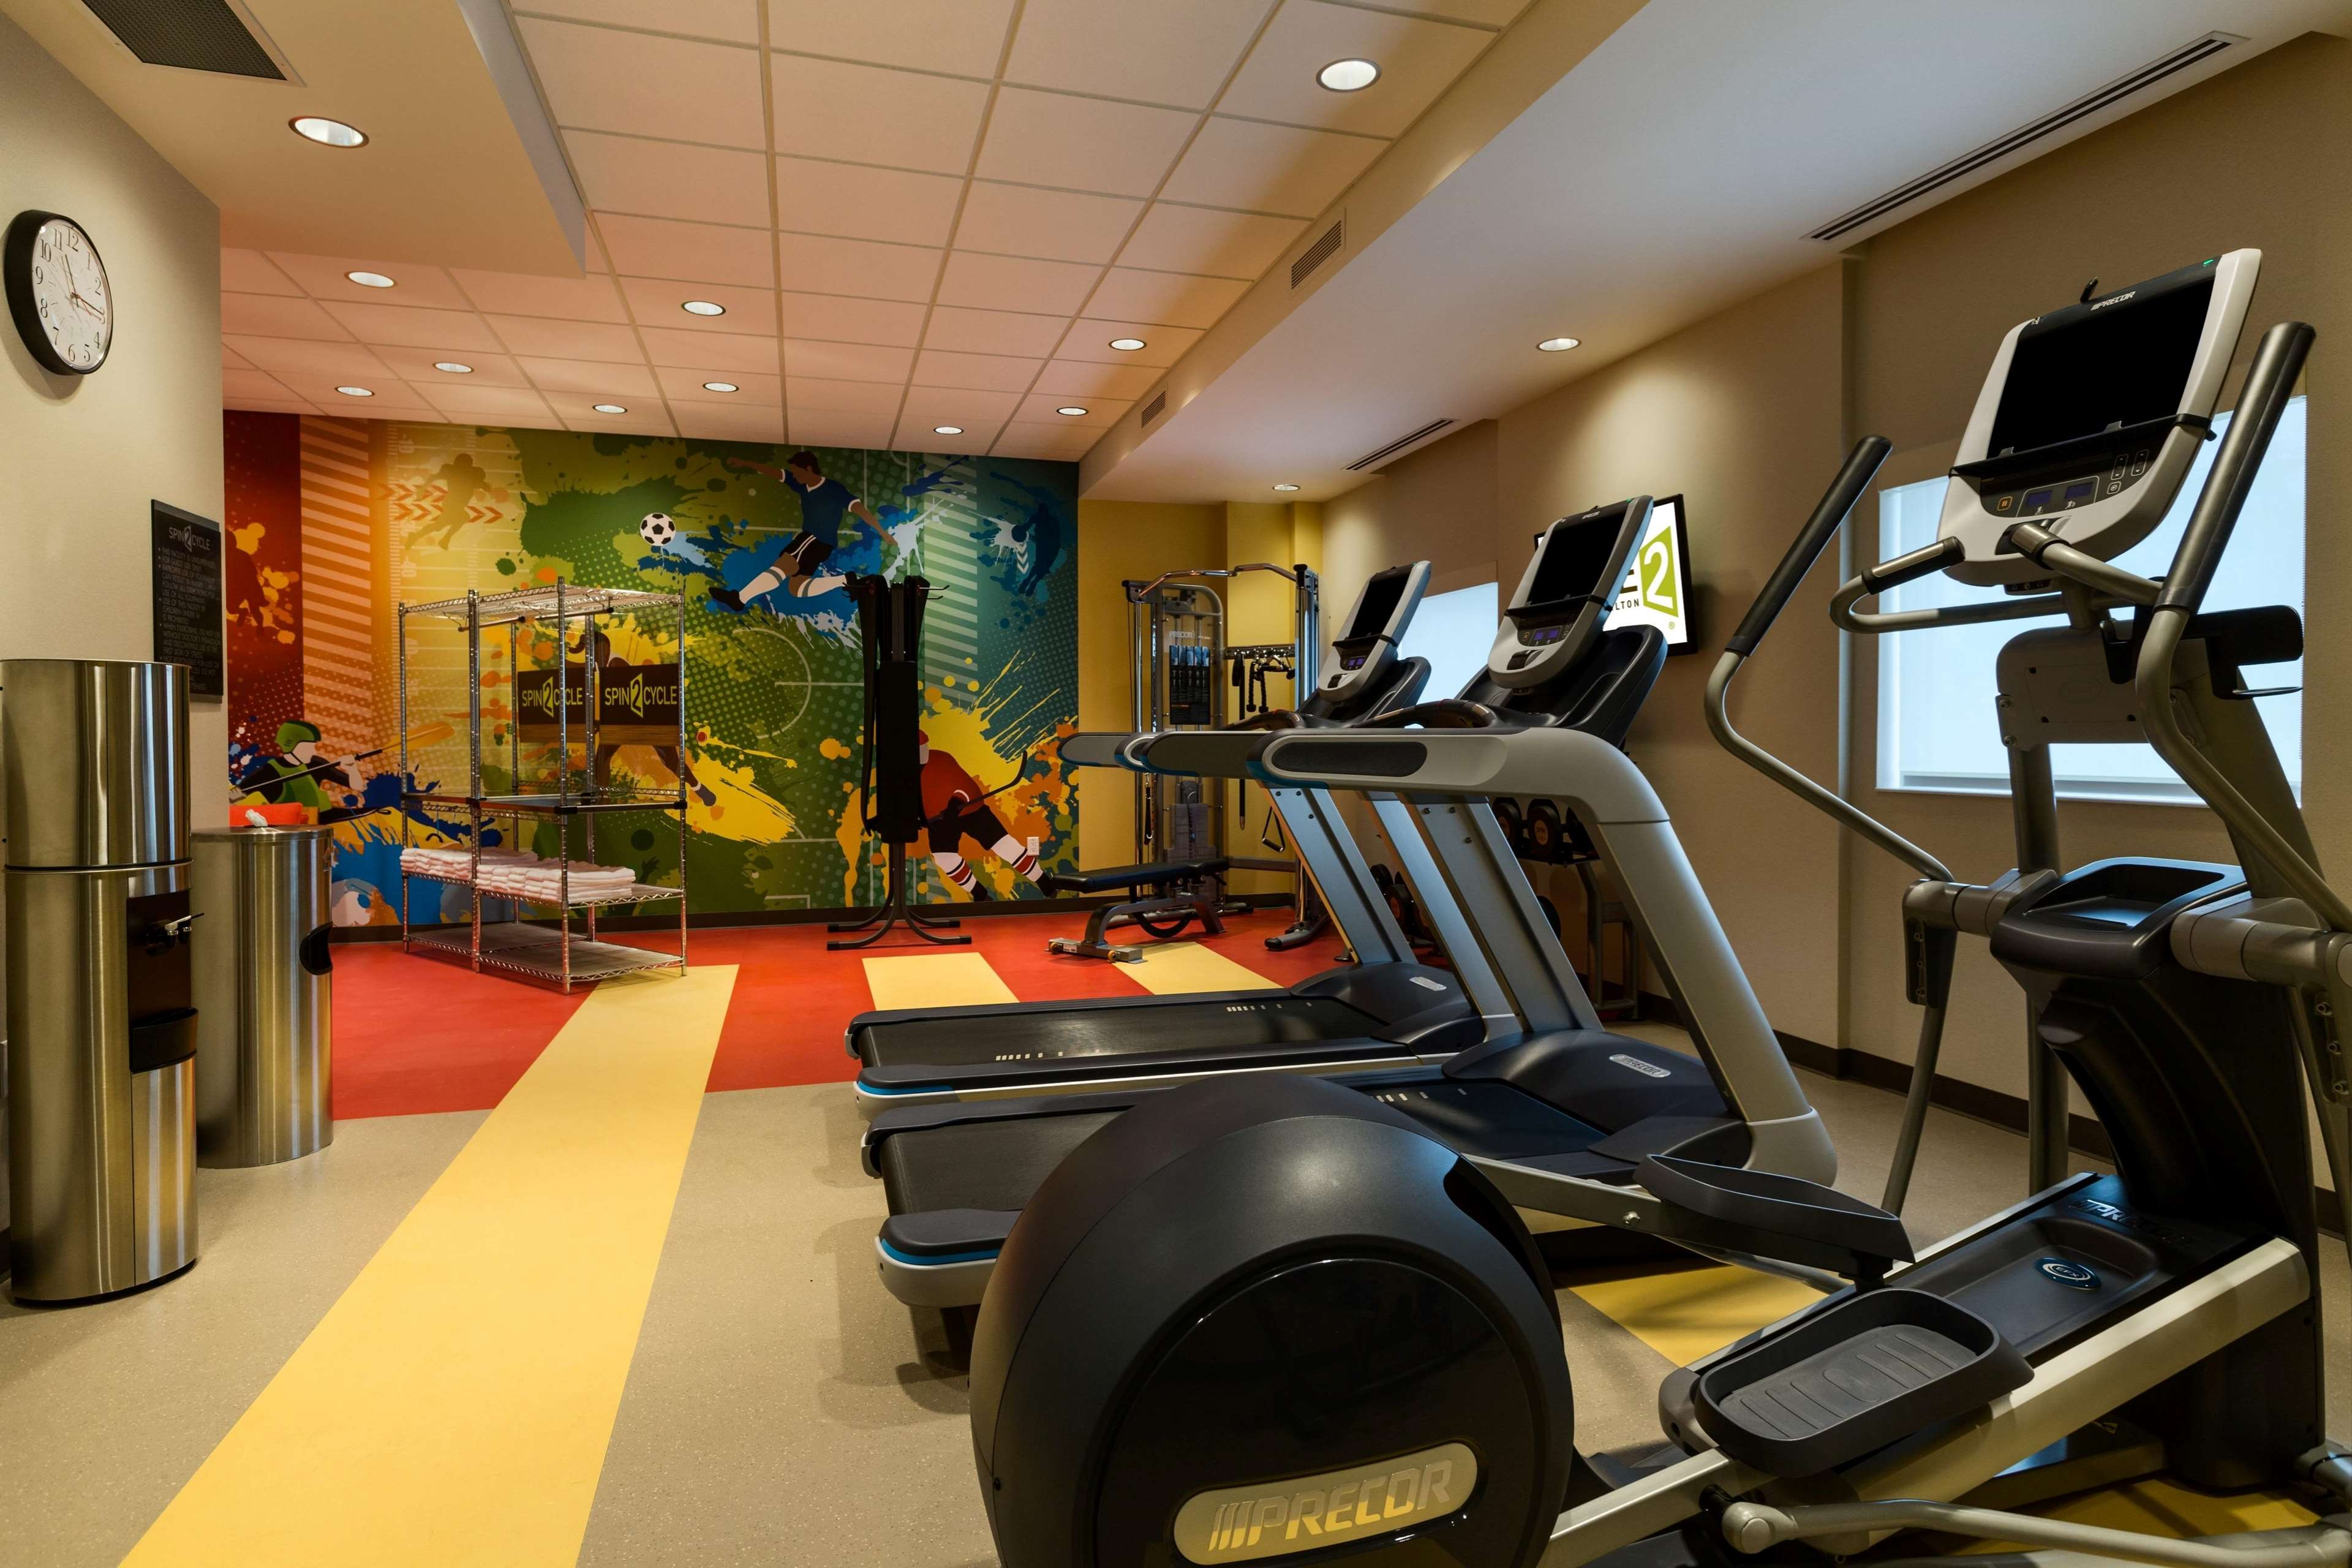 Home2 Suites by Hilton West Edmonton, Alberta, Canada in Edmonton: Spin 2 Cycle Fitness Center